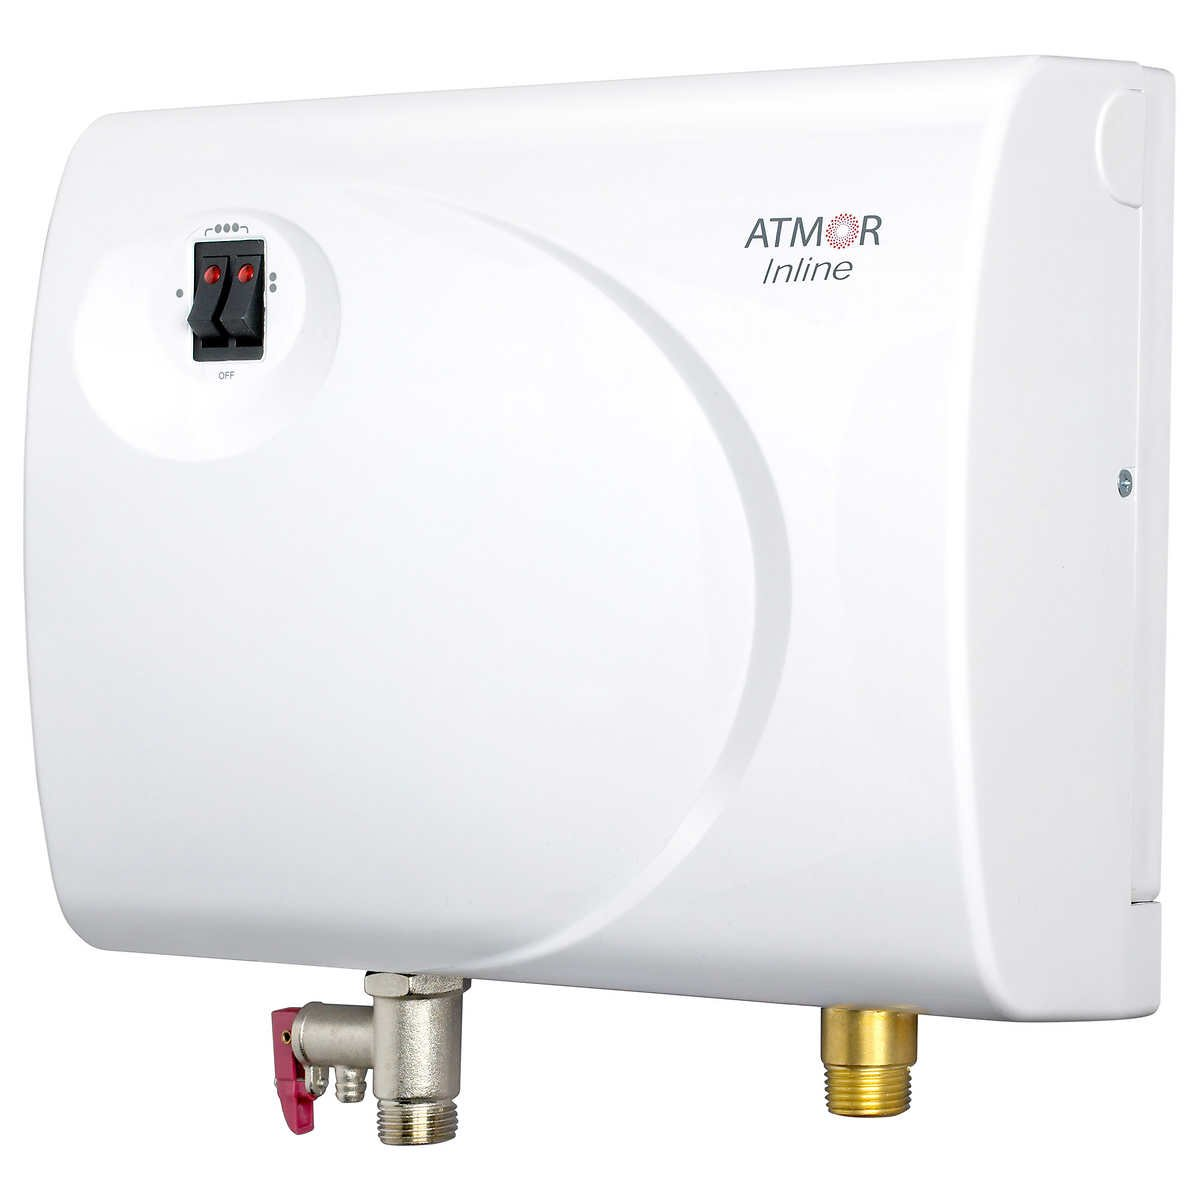 Atmor AT-S901-13 Tankless Electric Hot Water Heater, White by Atmor